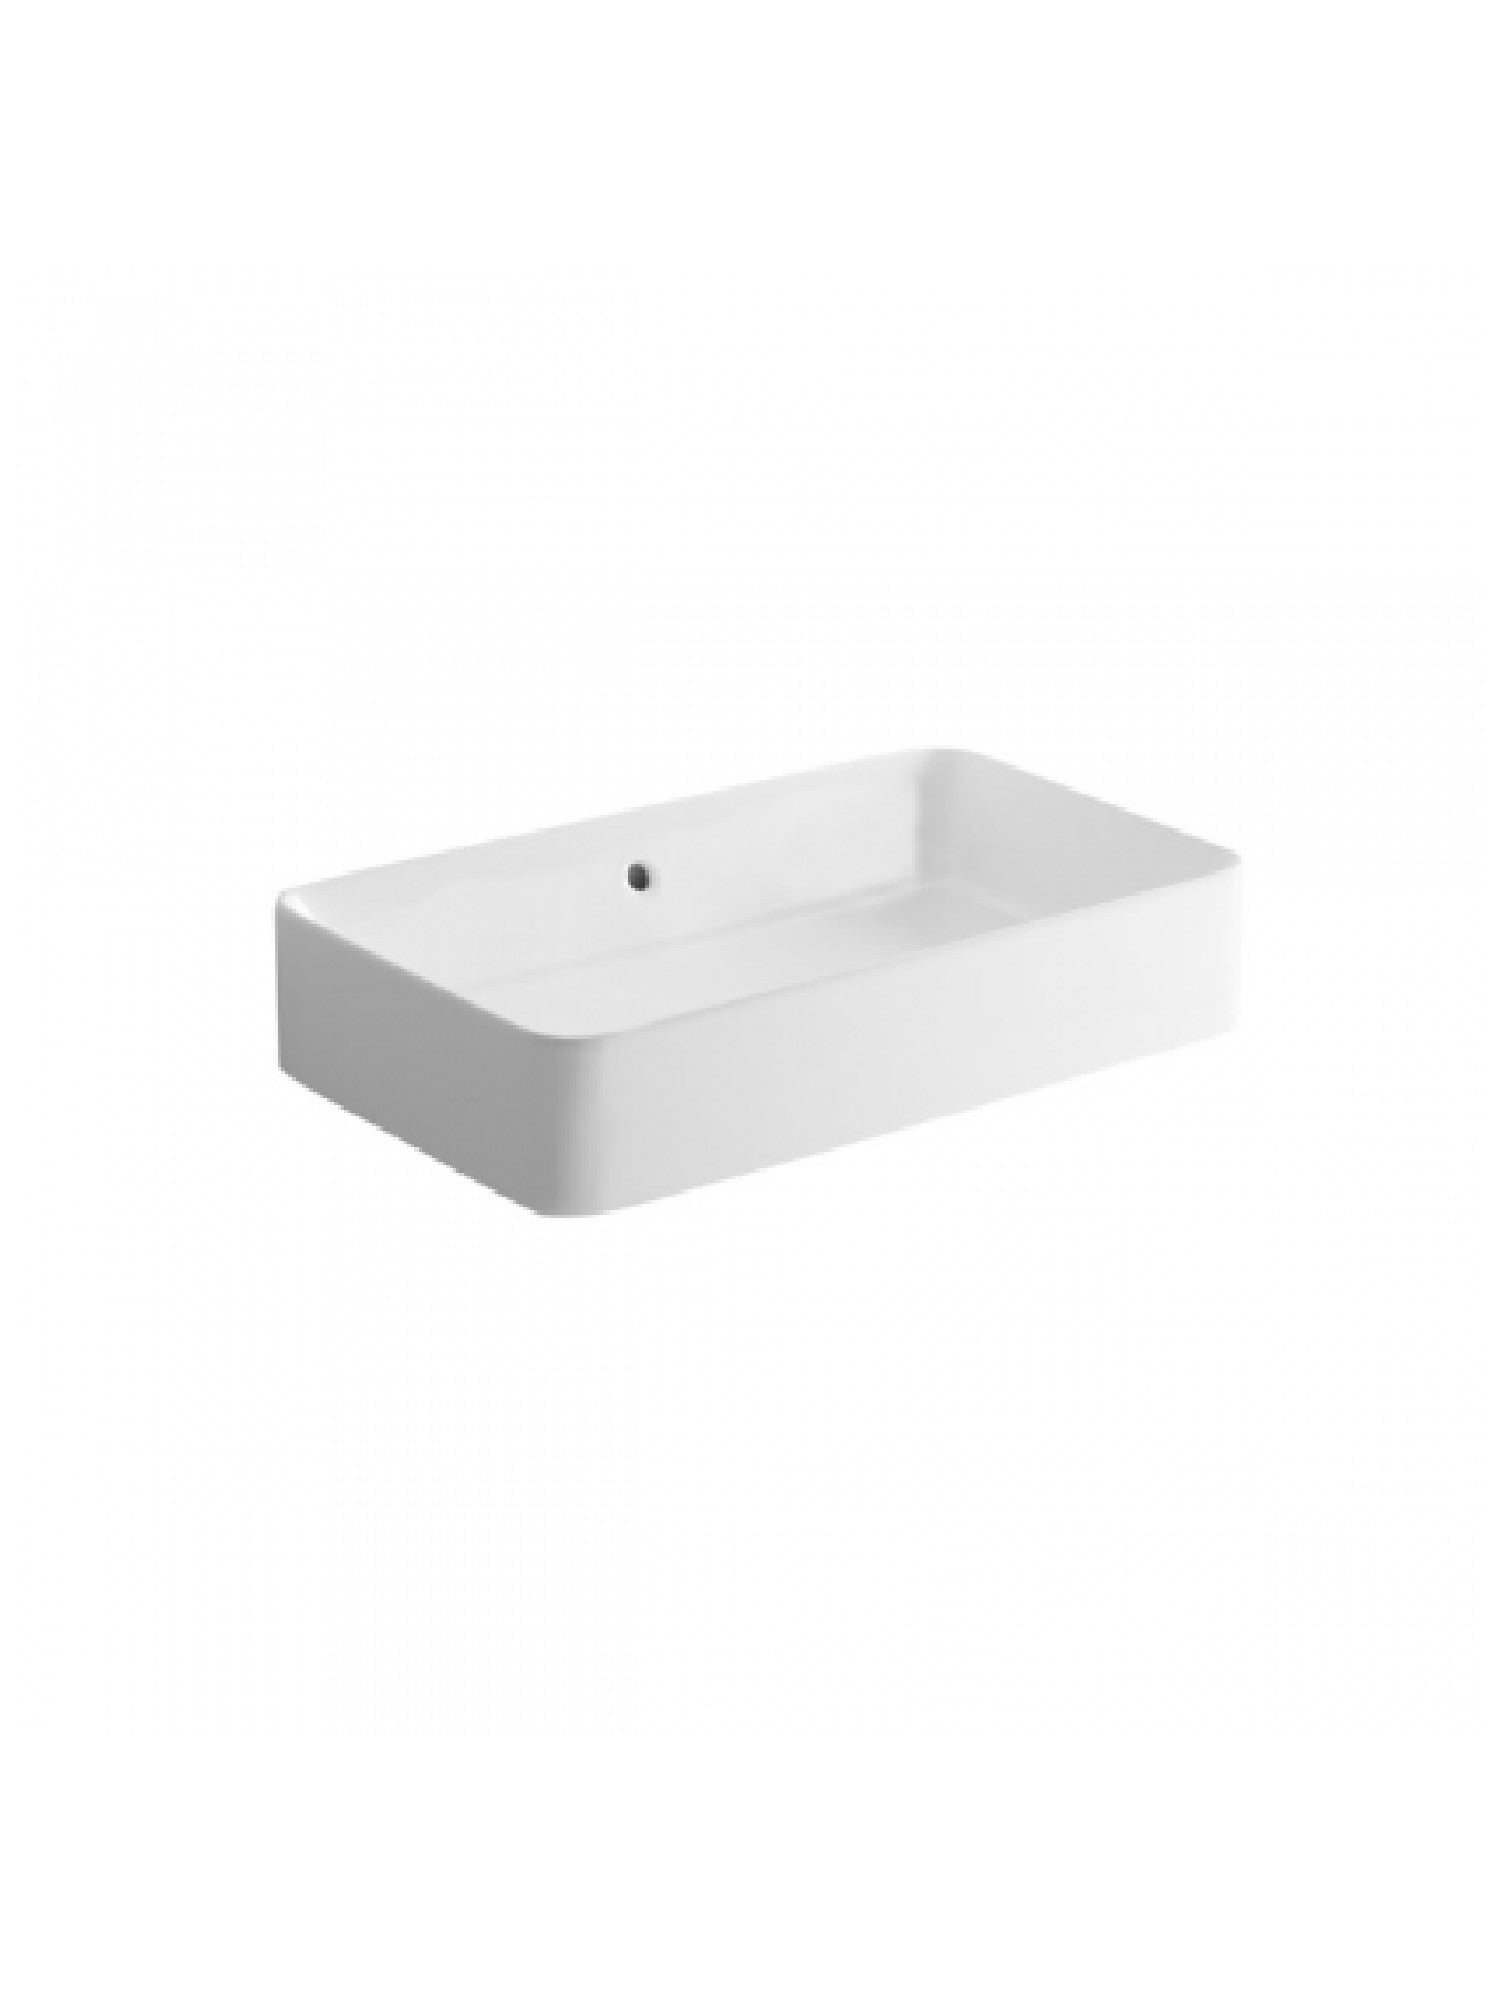 Sanlife Countertop Basin #136339